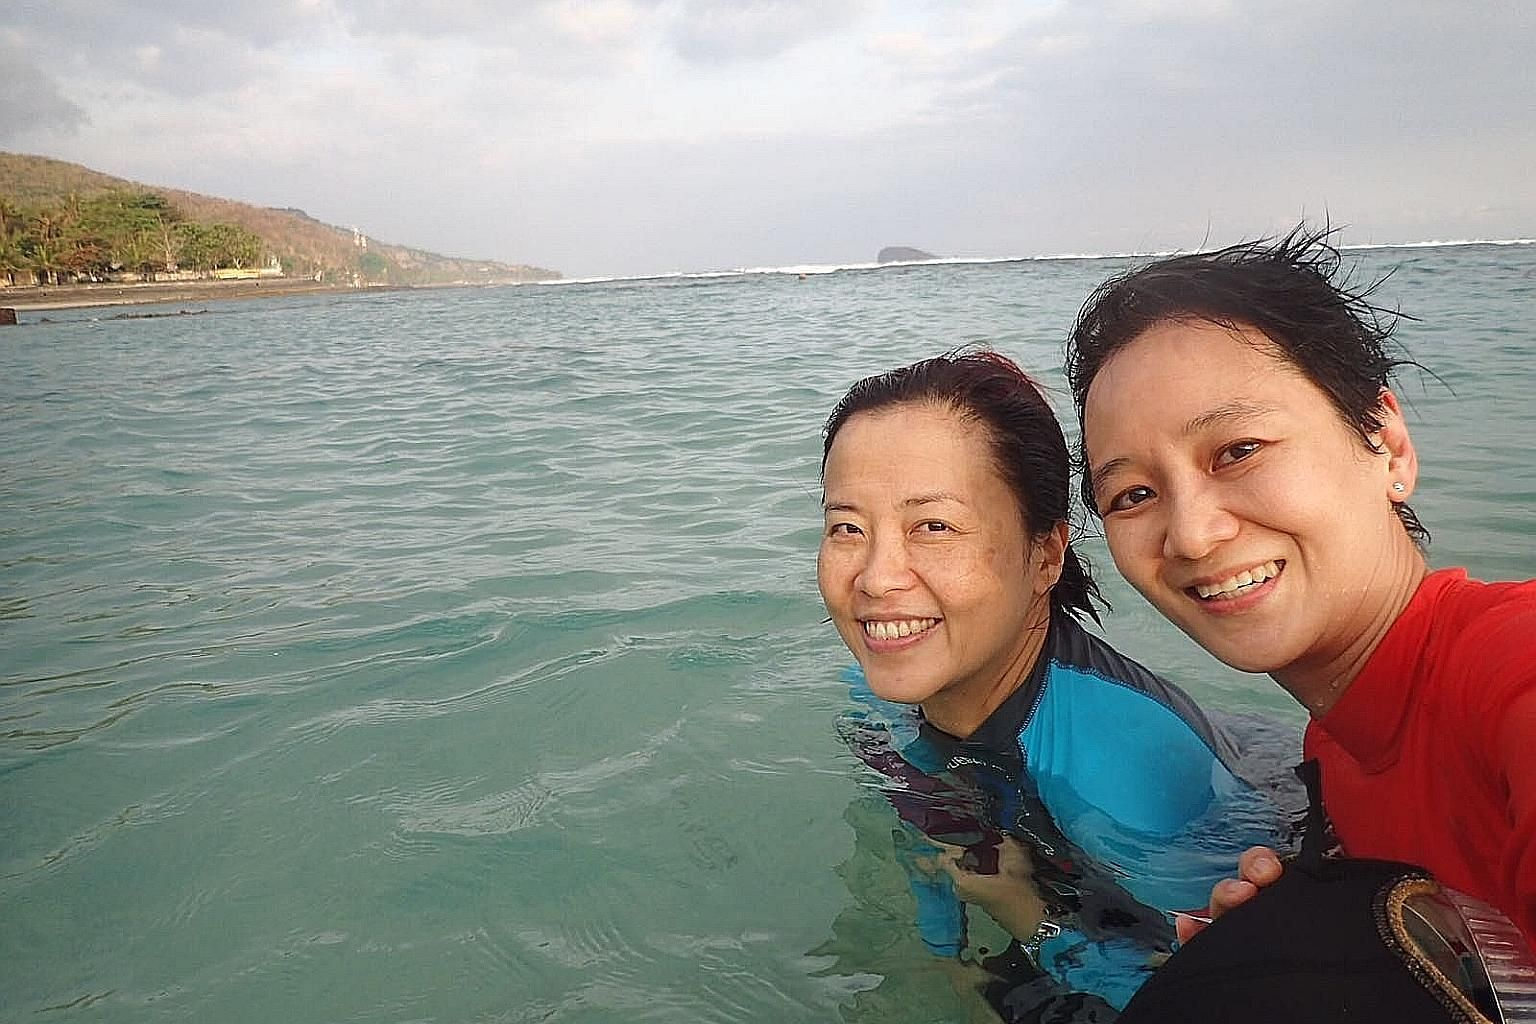 Dr Wong Yu Yi (right) with her friend, Ms Yap Shu Mei, who was with her during the fatal diving trip to Bali. Dr Wong went diving several times a year, did underwater photography, and enjoyed visiting hard-to-reach places to see the marine life.